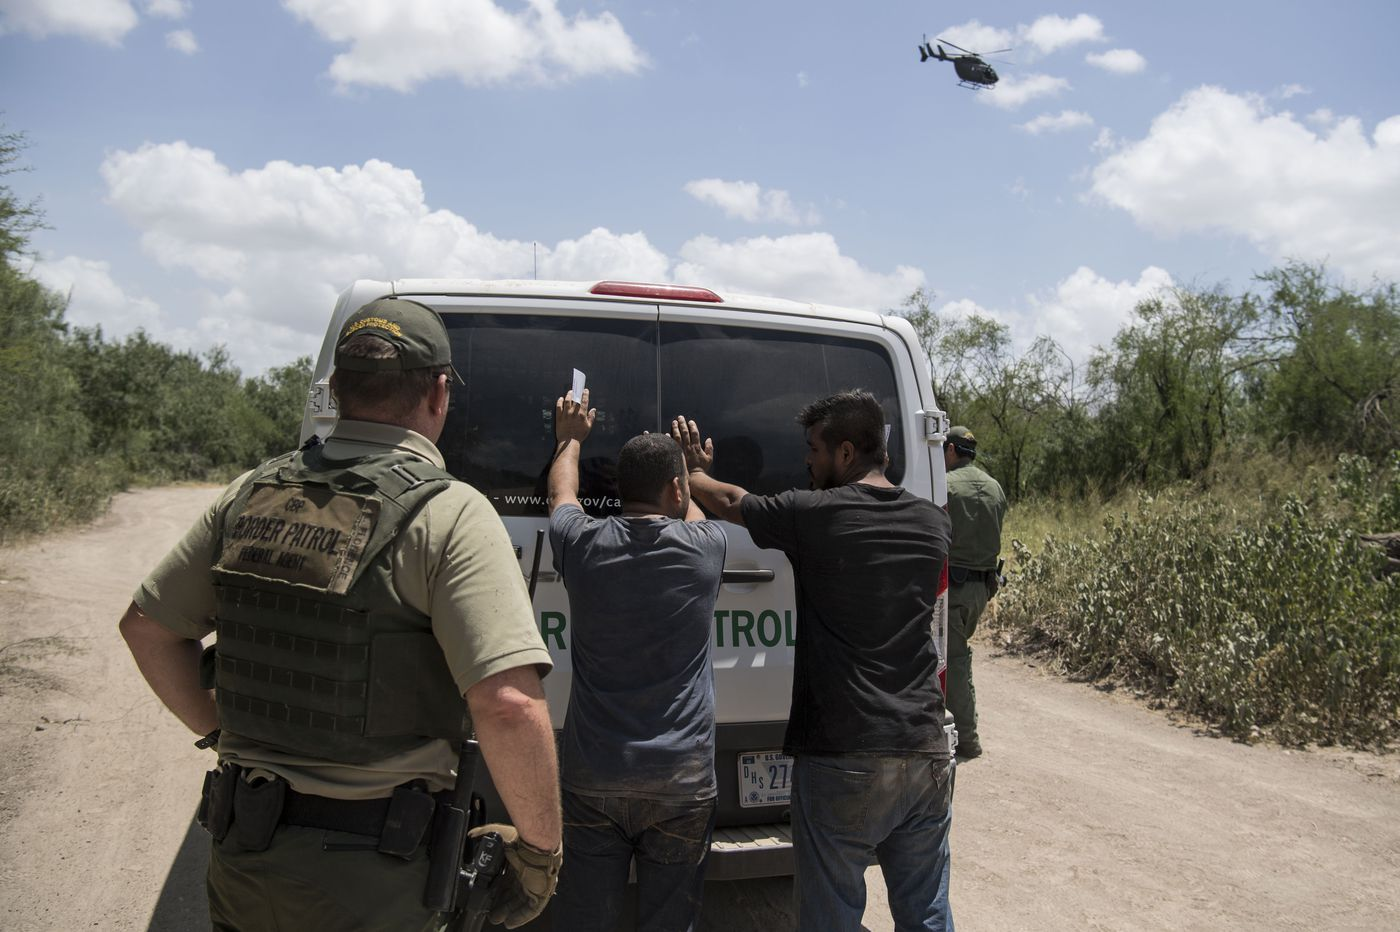 White House prepares large troop deployment to deter migrant caravan